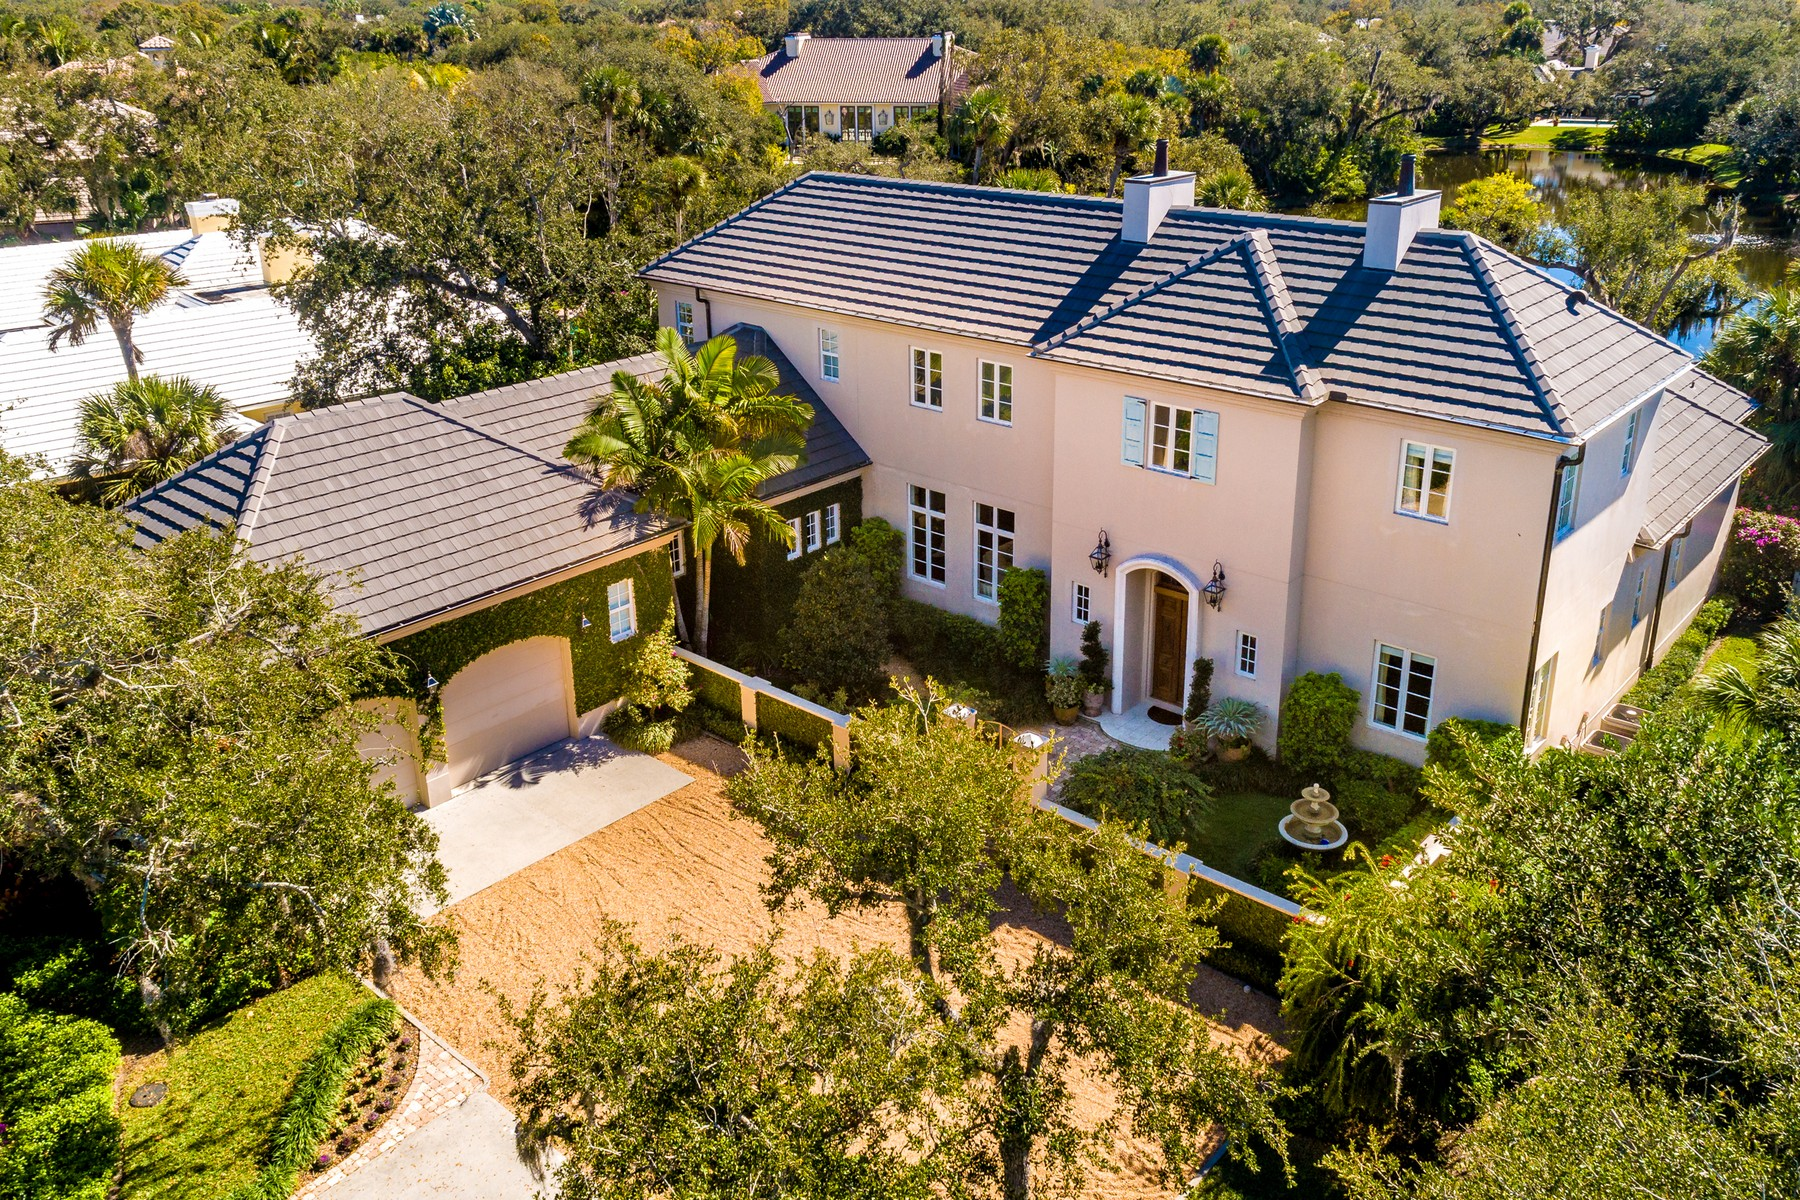 Single Family Home for Sale at Impeccable Lakefront Estate 131 Shores Drive Vero Beach, Florida 32963 United States